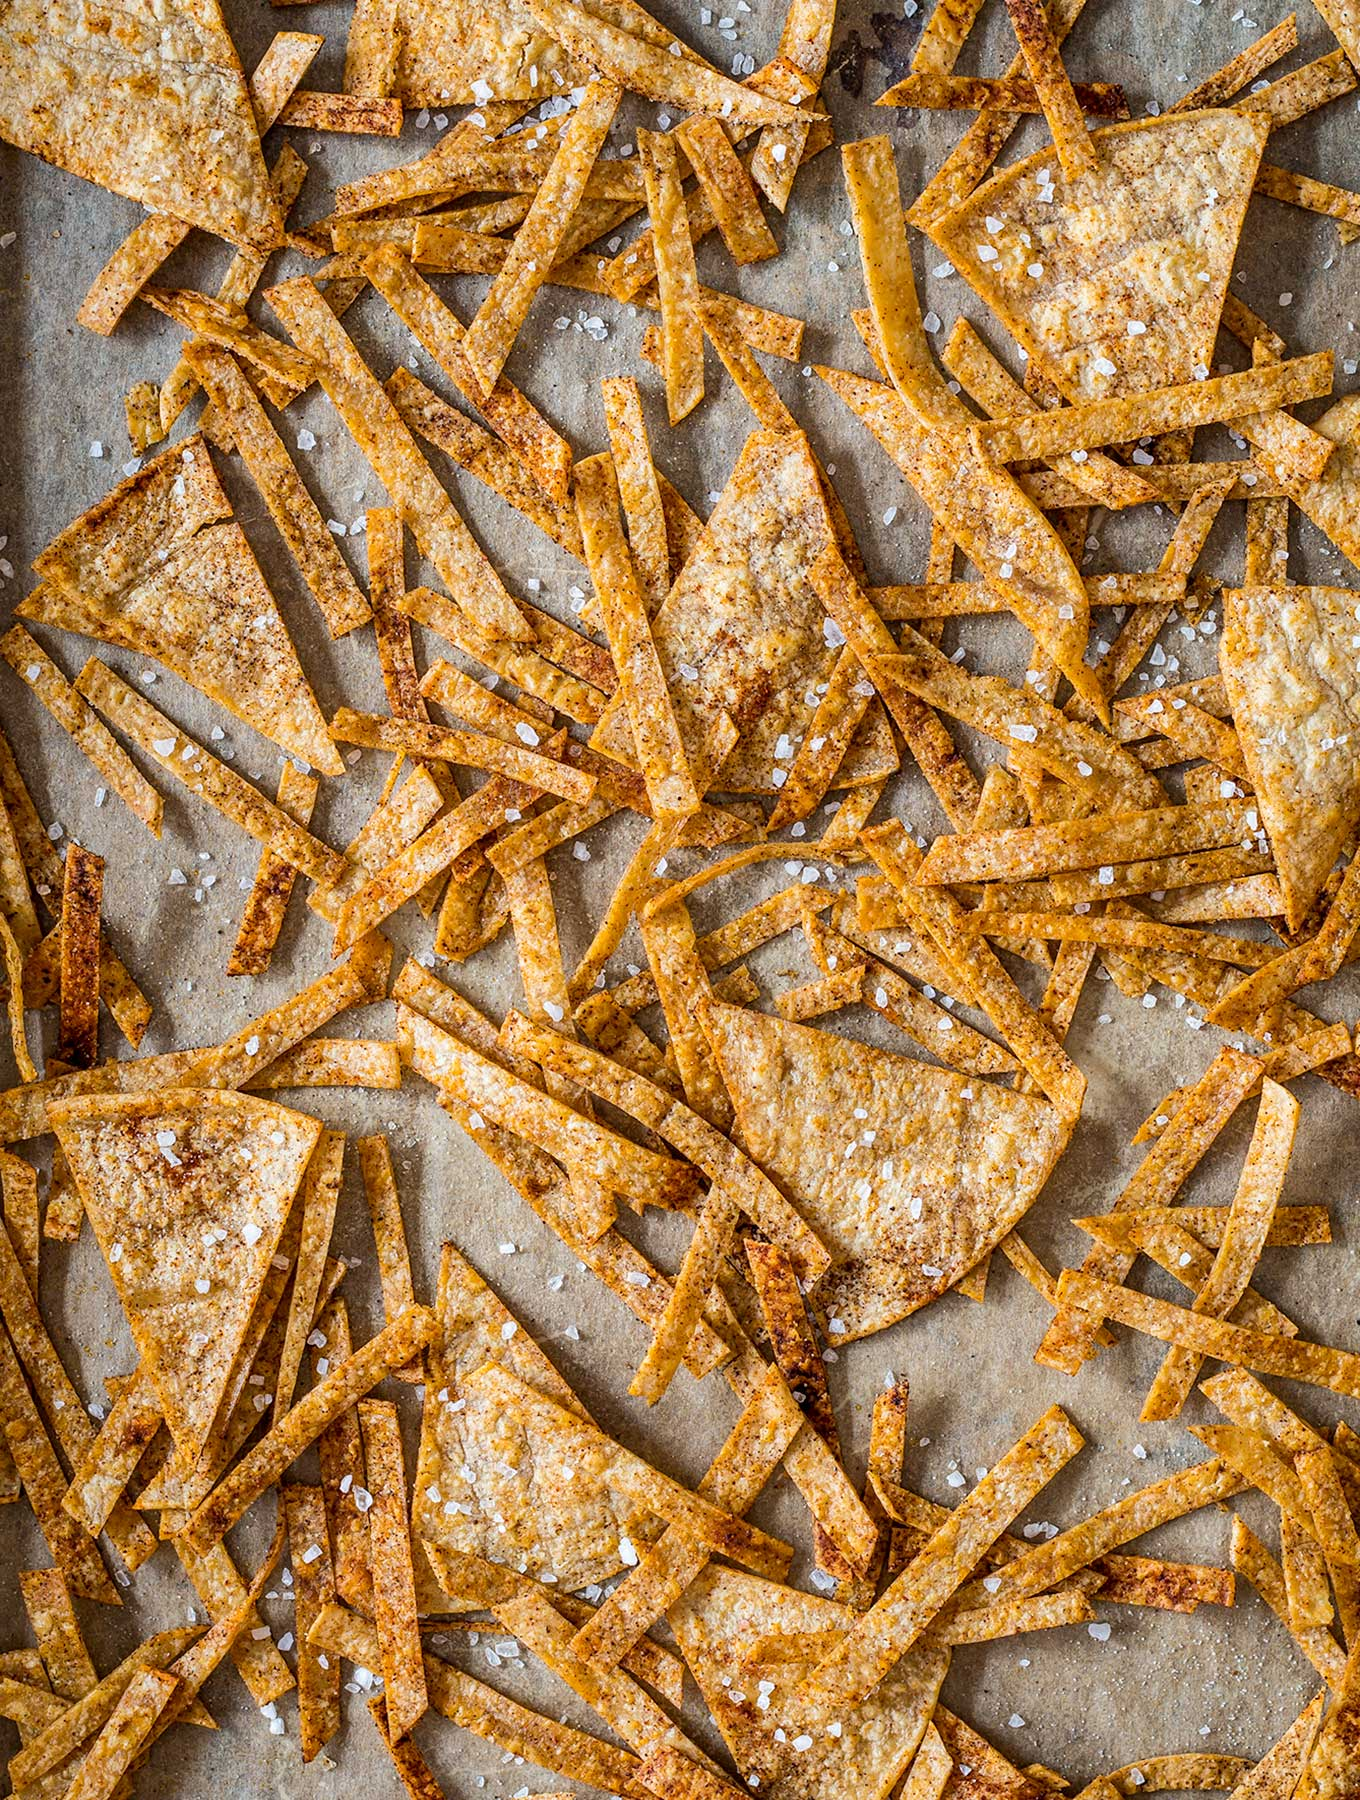 Tortilla strips and chips on a baking sheet